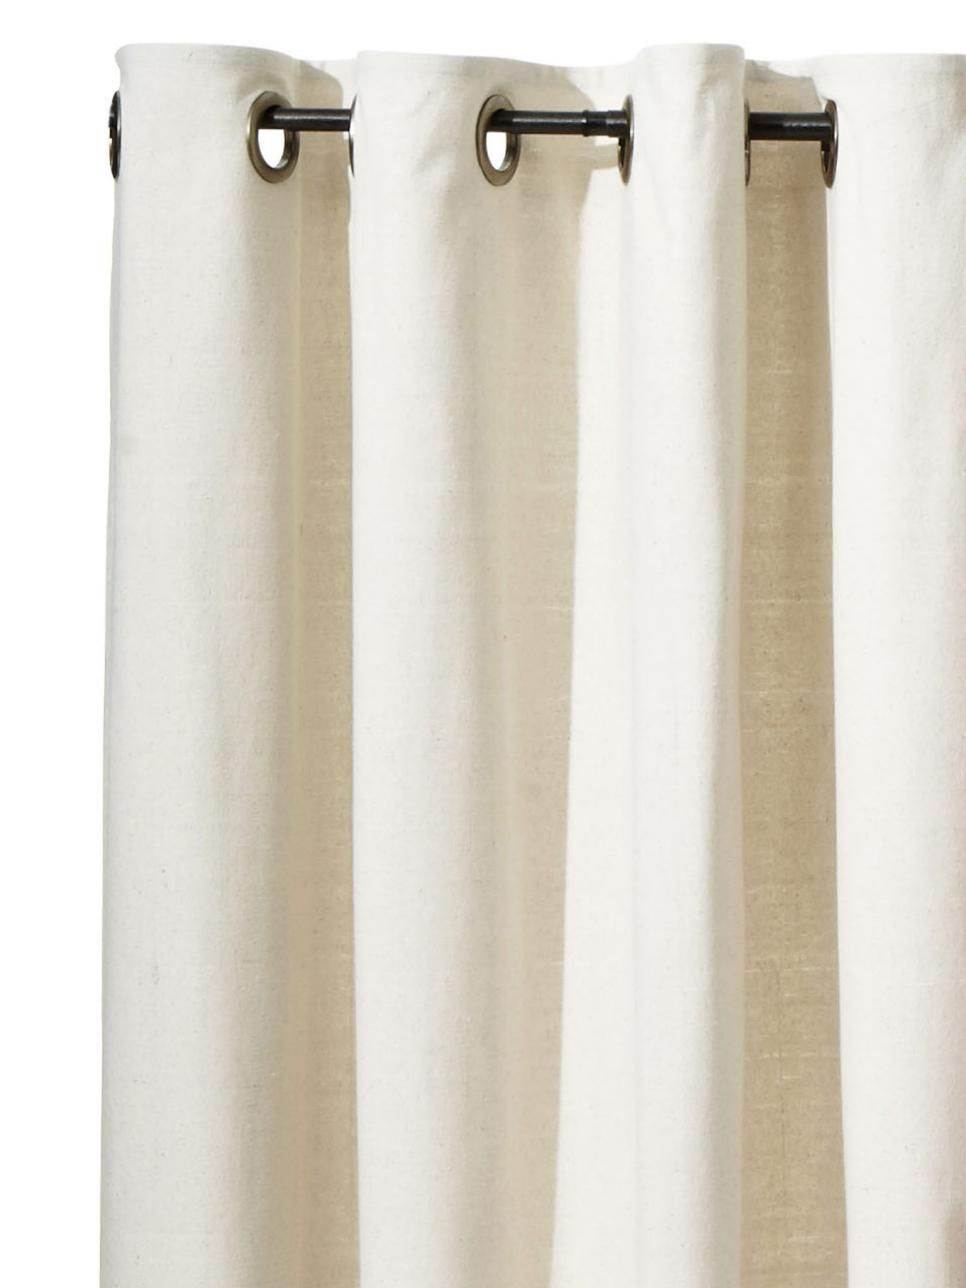 Creative window coverings  budget window treatment ideas  dritz whether and drop cloths